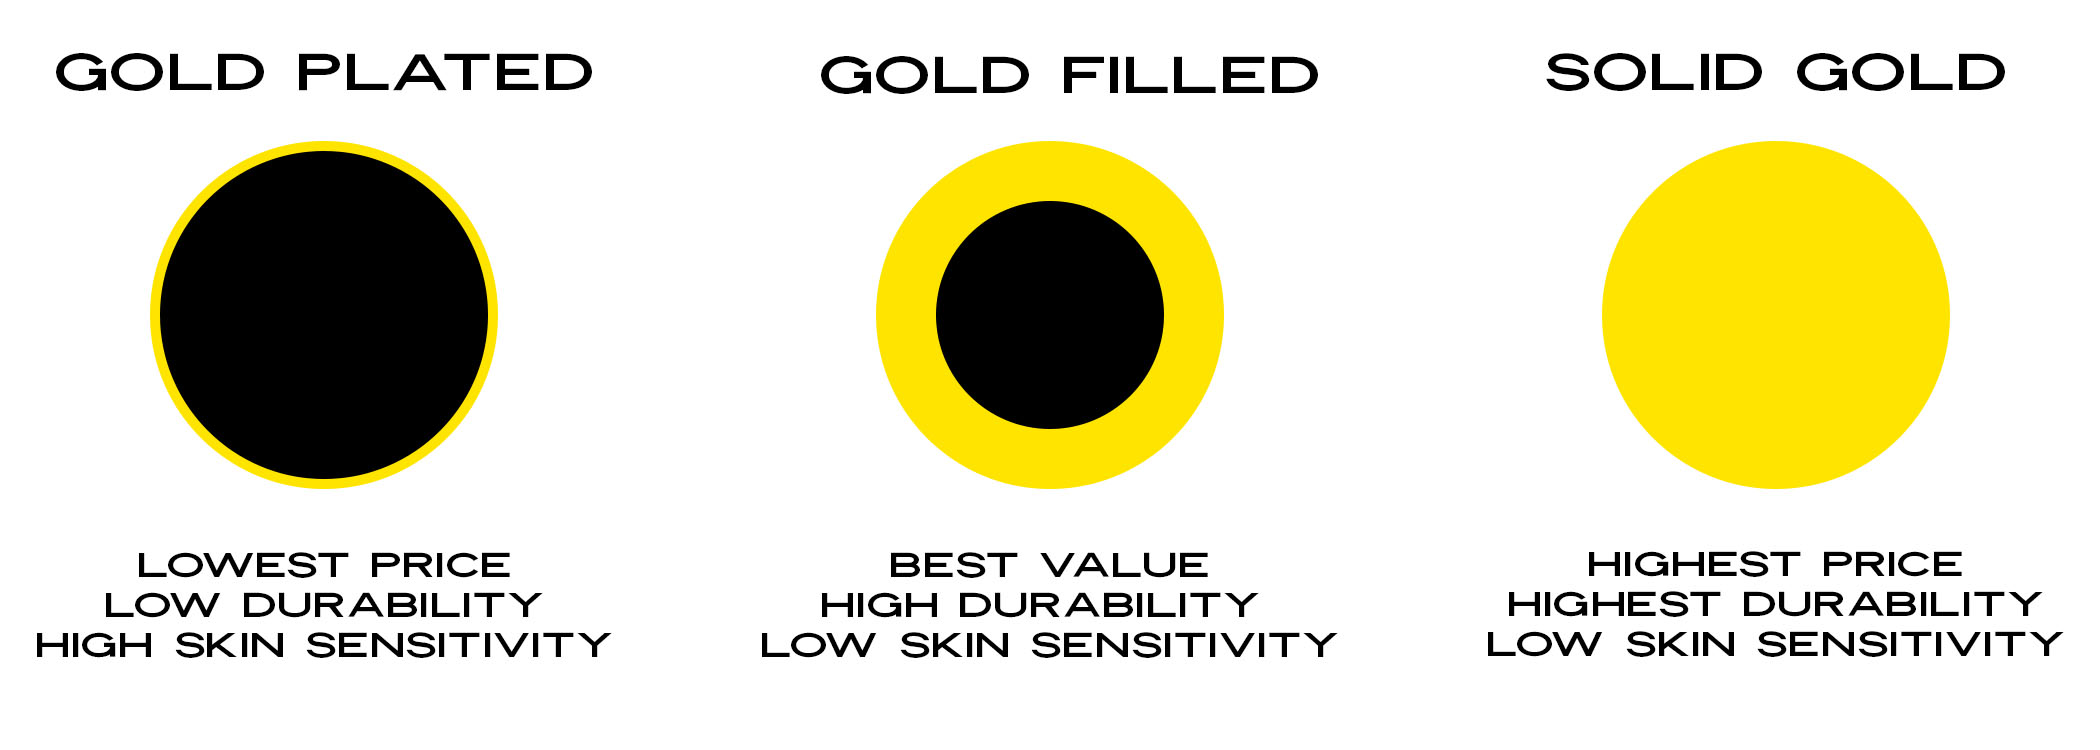 Gold plated vs glod filled